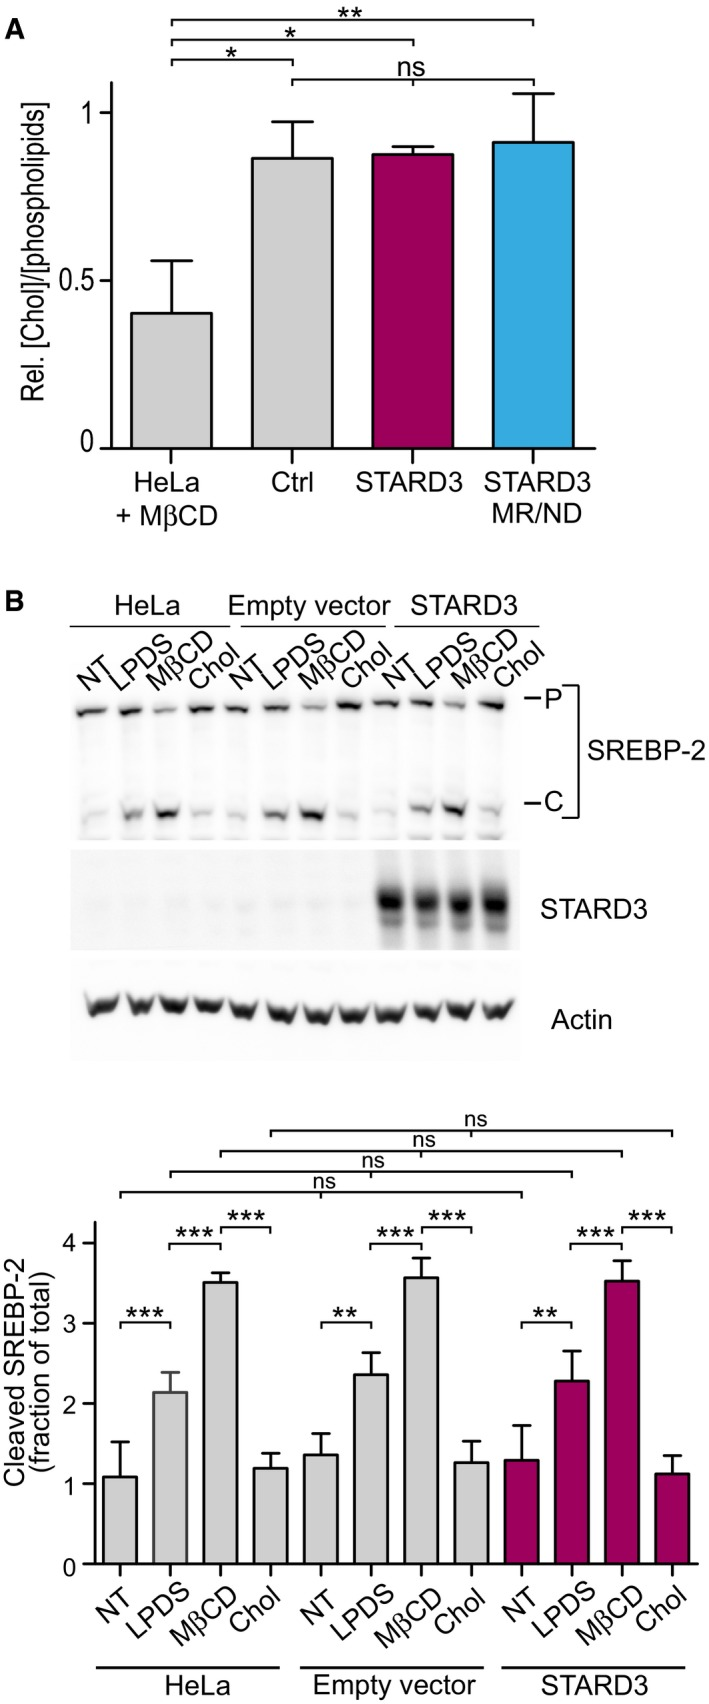 STARD3‐mediated cholesterol accumulation in endosomes does not alter cholesterol homeostasis Total free cholesterol quantification after total lipid extraction in control cells and in cells expressing STARD3 or the lipid binding mutant form of STARD3 (STARD3 MR/ND) ( n = 3). Please note that control HeLa cells treated with MβCD have a significant depletion of total cholesterol ( n = 2). Mean ± SD; ANOVA with Tukey's multiple comparison test. Western blot analysis of SREBP‐2 activation in controls (HeLa, HeLa/empty vector) or STARD3‐overexpressing HeLa cells. Cells were incubated for 2 h in DMEM culture medium supplemented with: 5% FCS (NT); 5% LPDS, 10 μM mevinolin (LPDS); 5% LPDS, 10 μM mevinolin, 1 mM MβCD (MβCD); 5% LPDS, 10 μM mevinolin, 500 μM cholesterol complexed to MβCD (MβCD‐Chol). The proteasome inhibitor MG132 (10 μM) was present in all conditions. P = precursor form of SREBP‐2; C = cleaved form of SREBP‐2. Lower panel: WB quantification in which cleaved SREBP‐2 is expressed as a fraction of total SREBP2 (P+C). Mean ± SD; n = 4 independent experiments; ** P